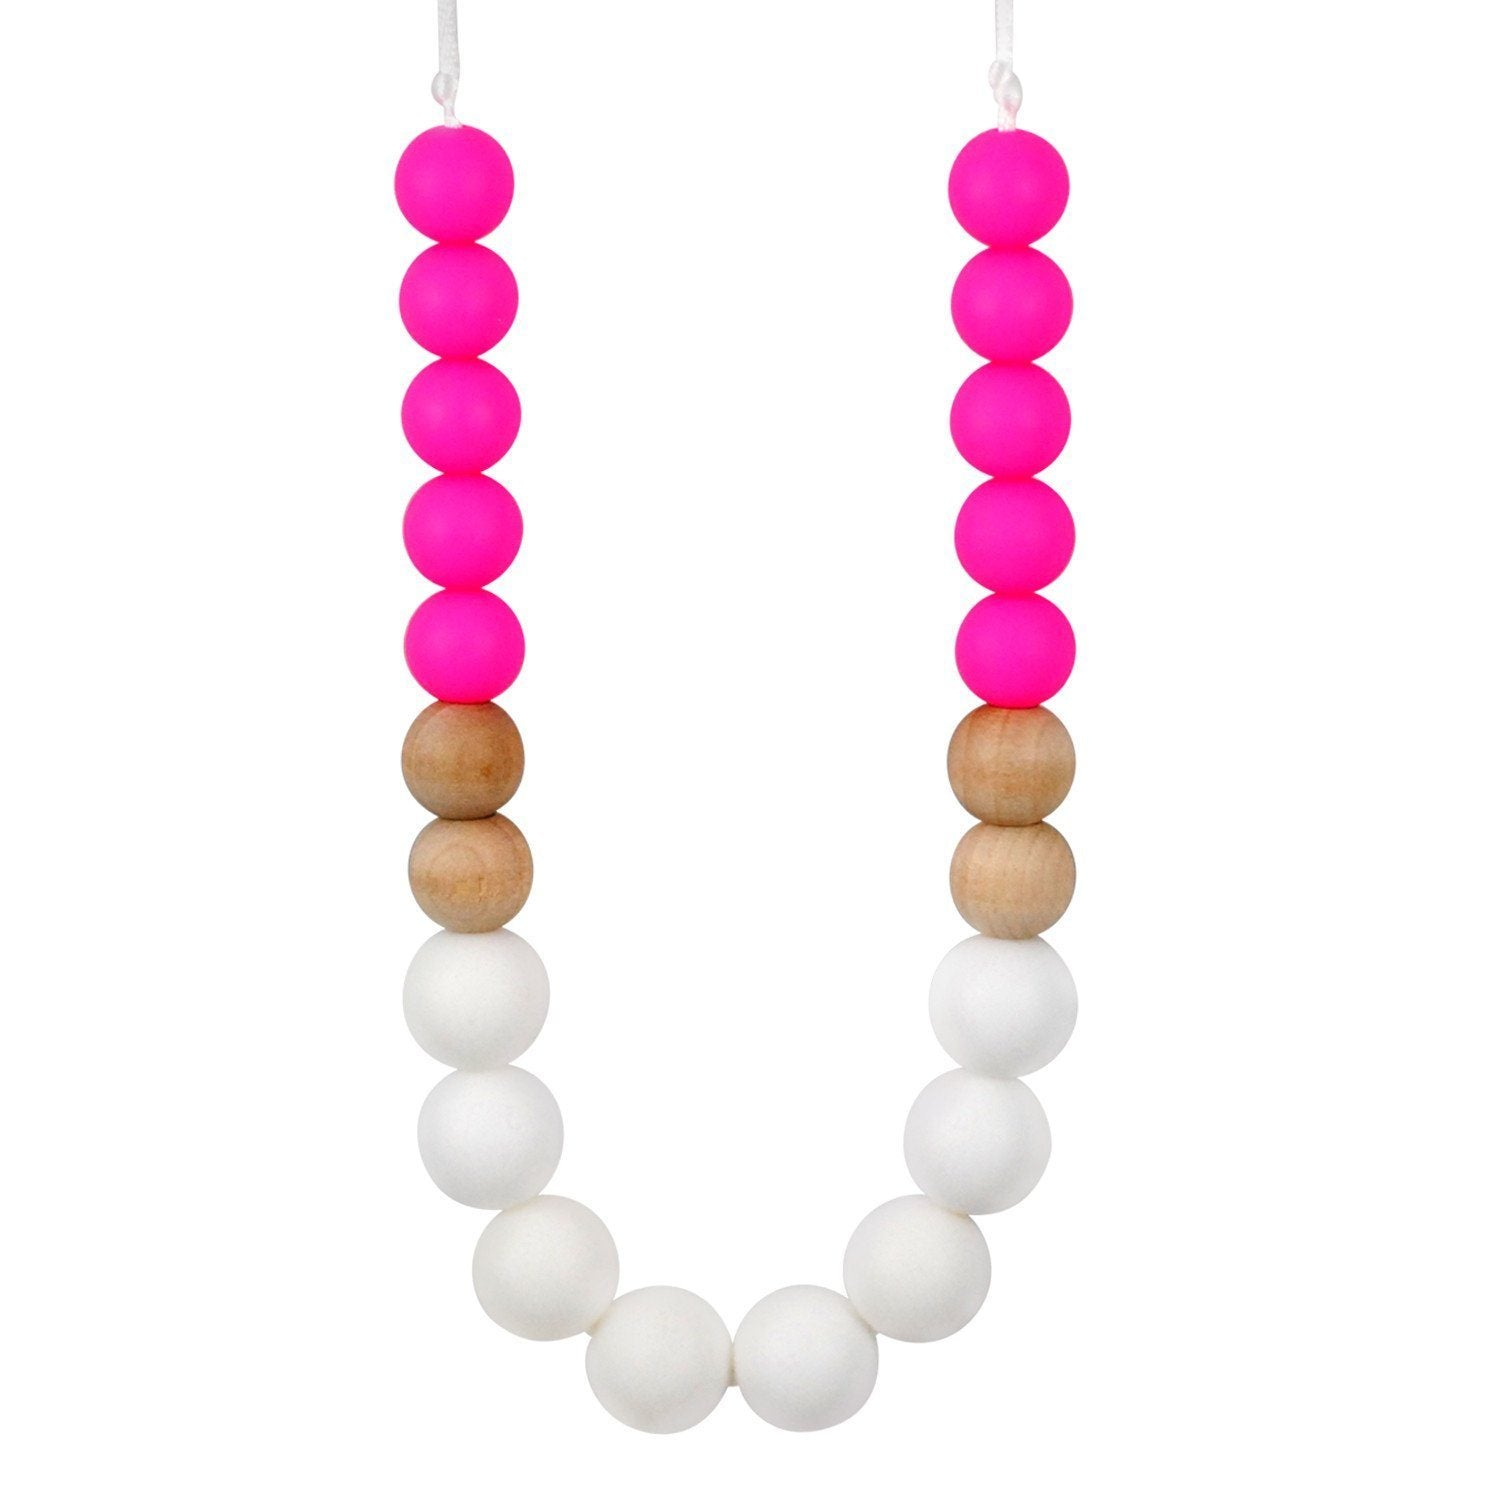 Silicone Teething Necklace - Kalia - Glitter & Spice